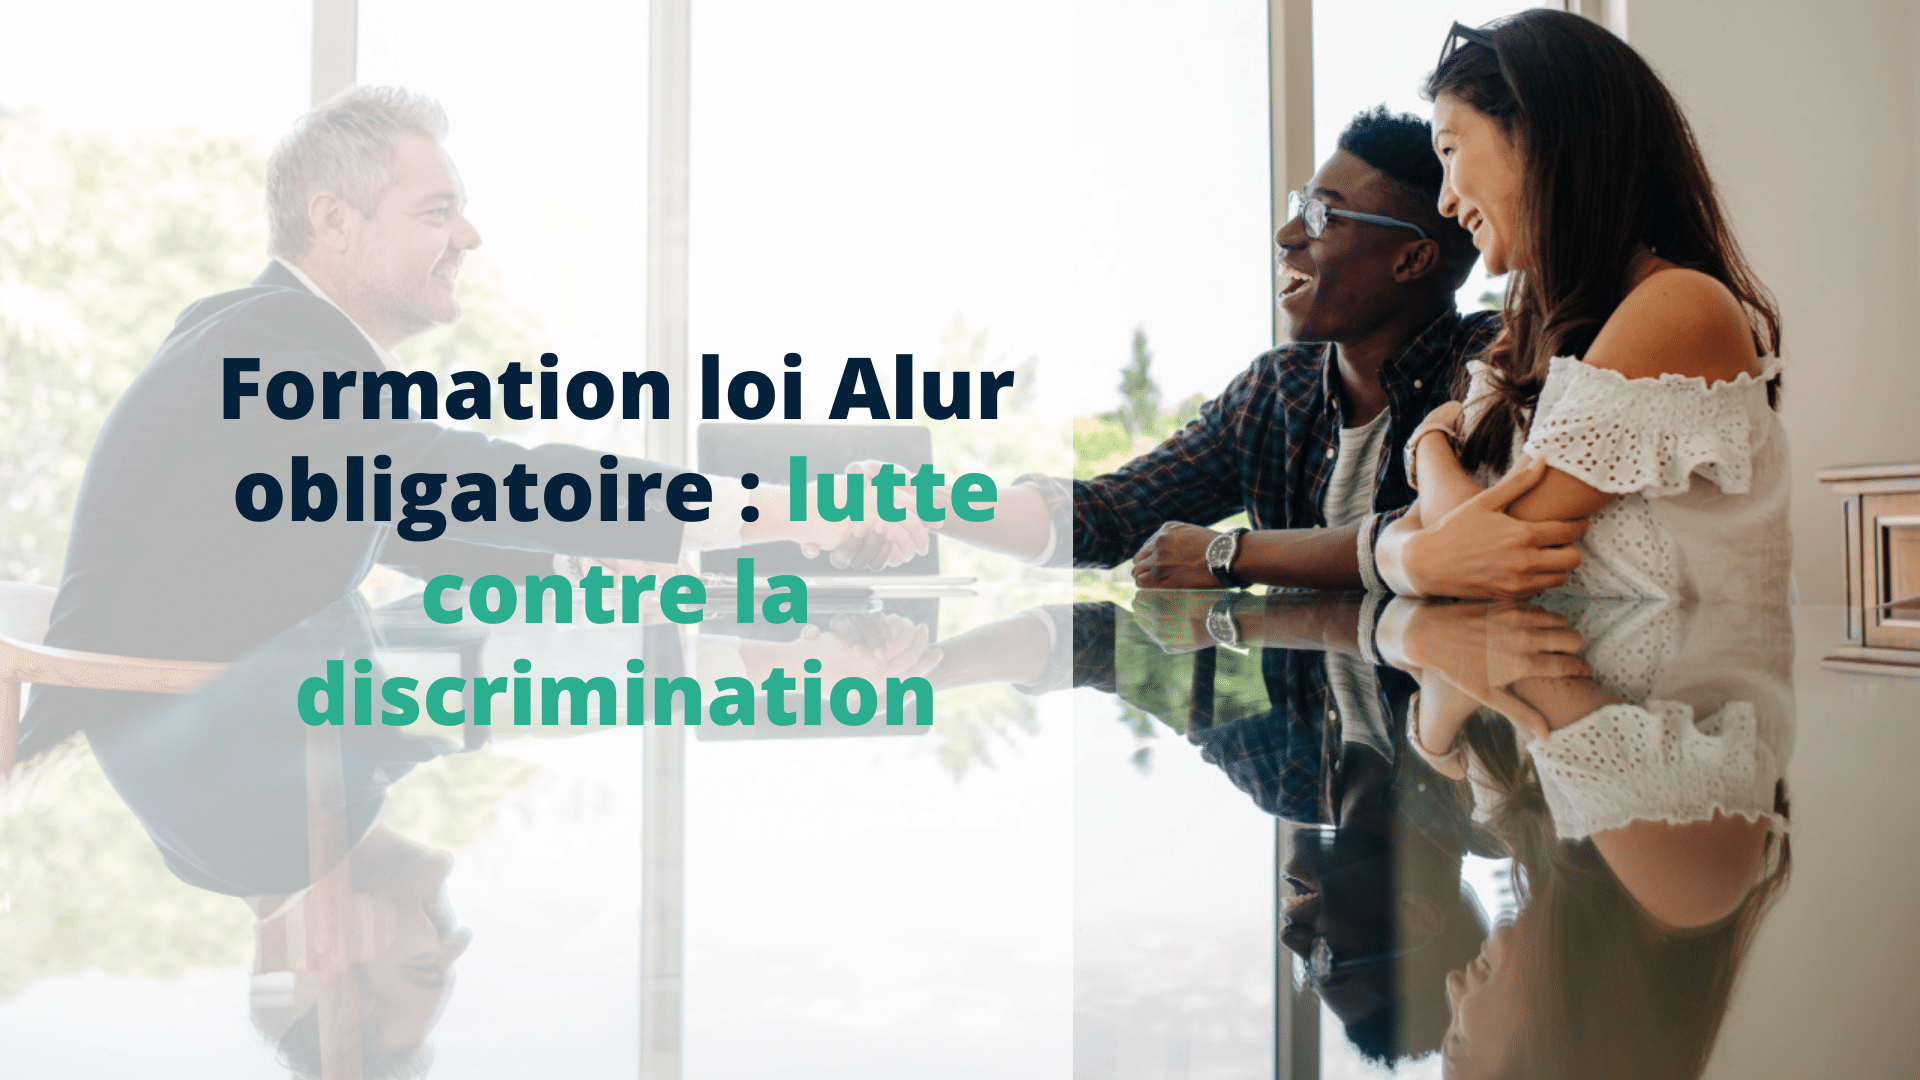 Formation loi Alur obligatoire lutte contre la discrimination - Start Learning